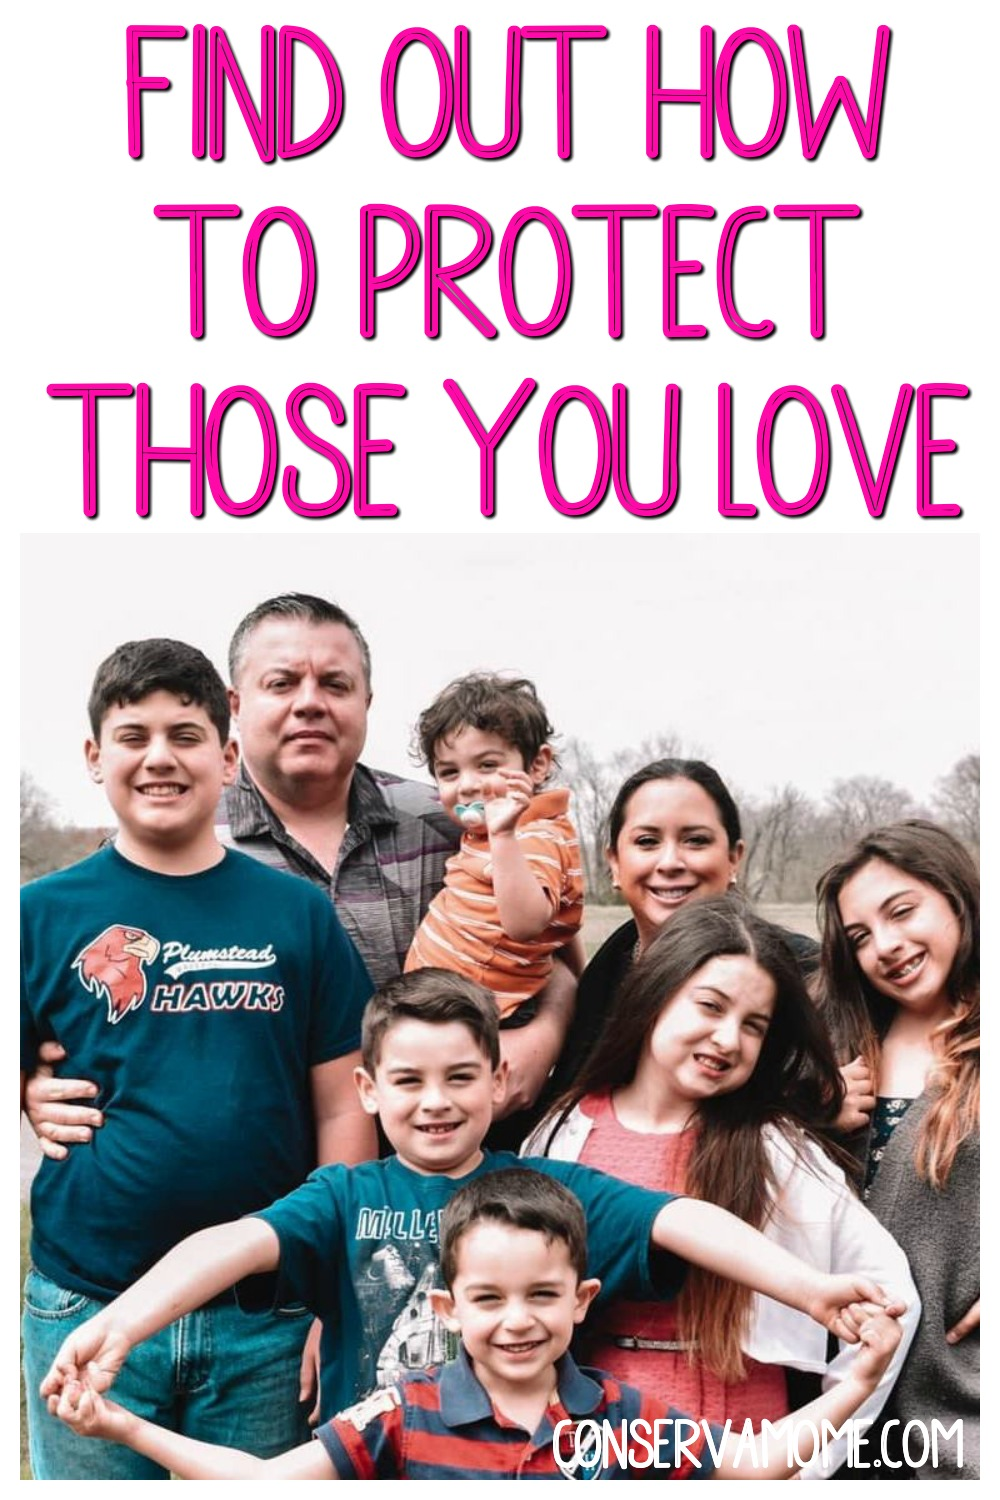 Find out how to protect those you love